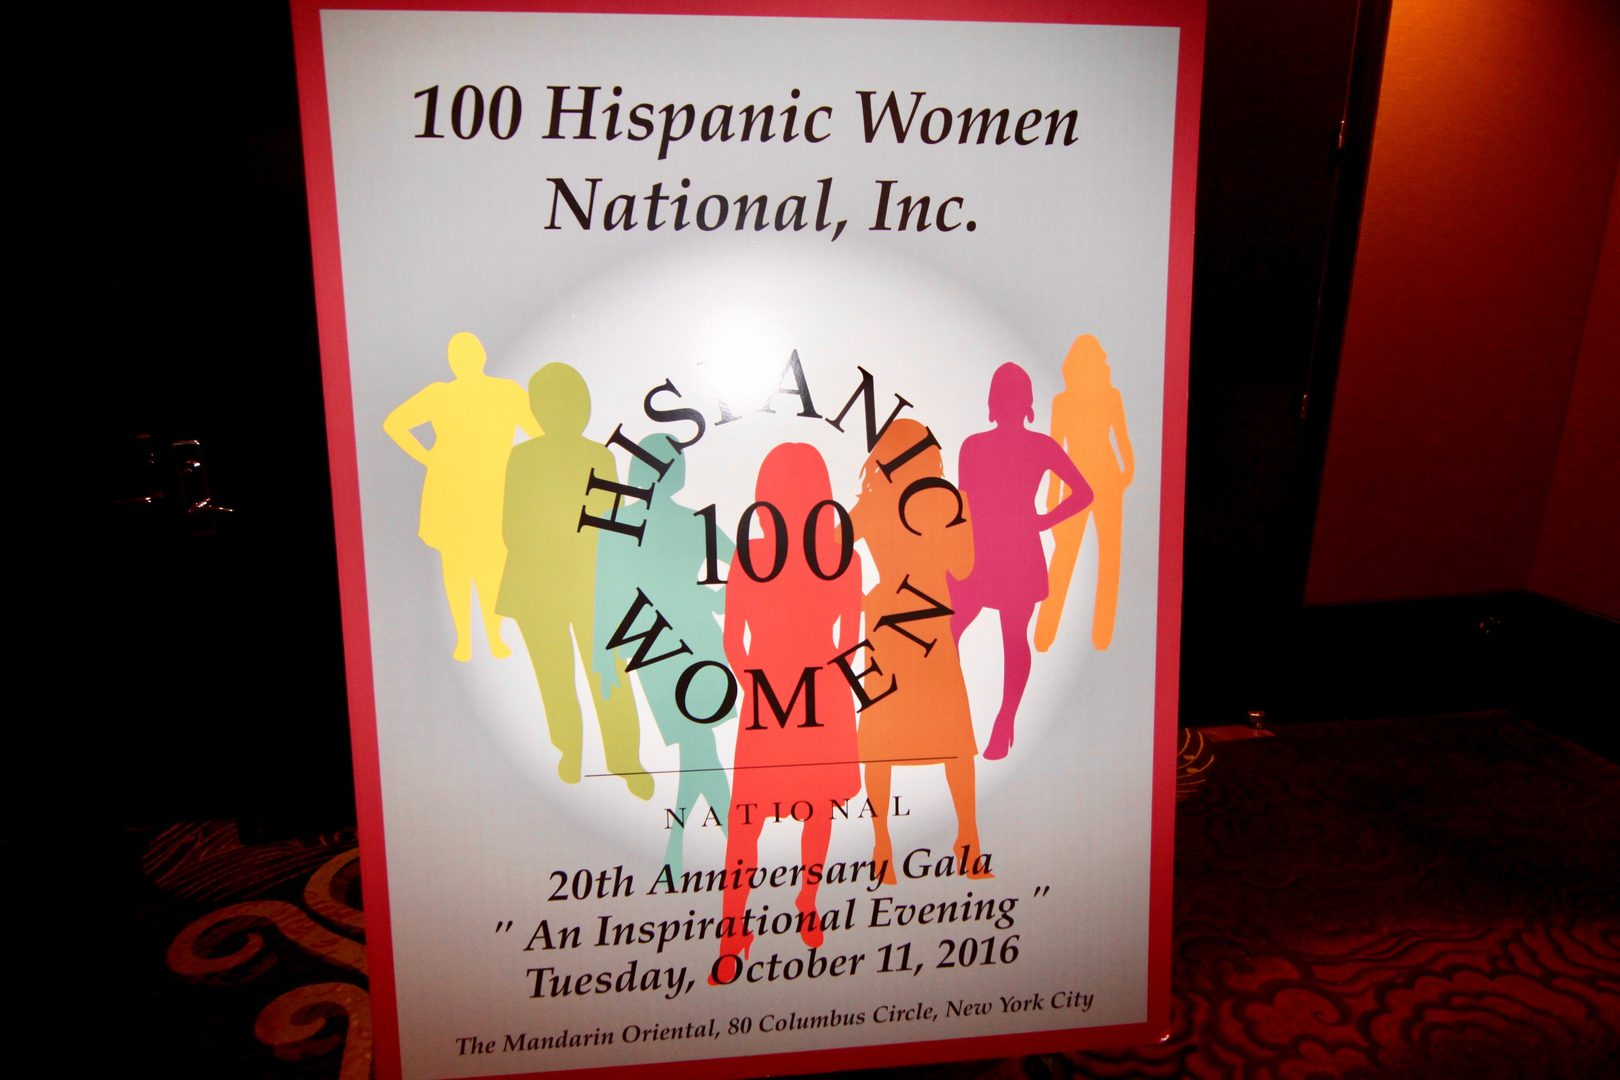 : A 20th anniversary gala for the women's group